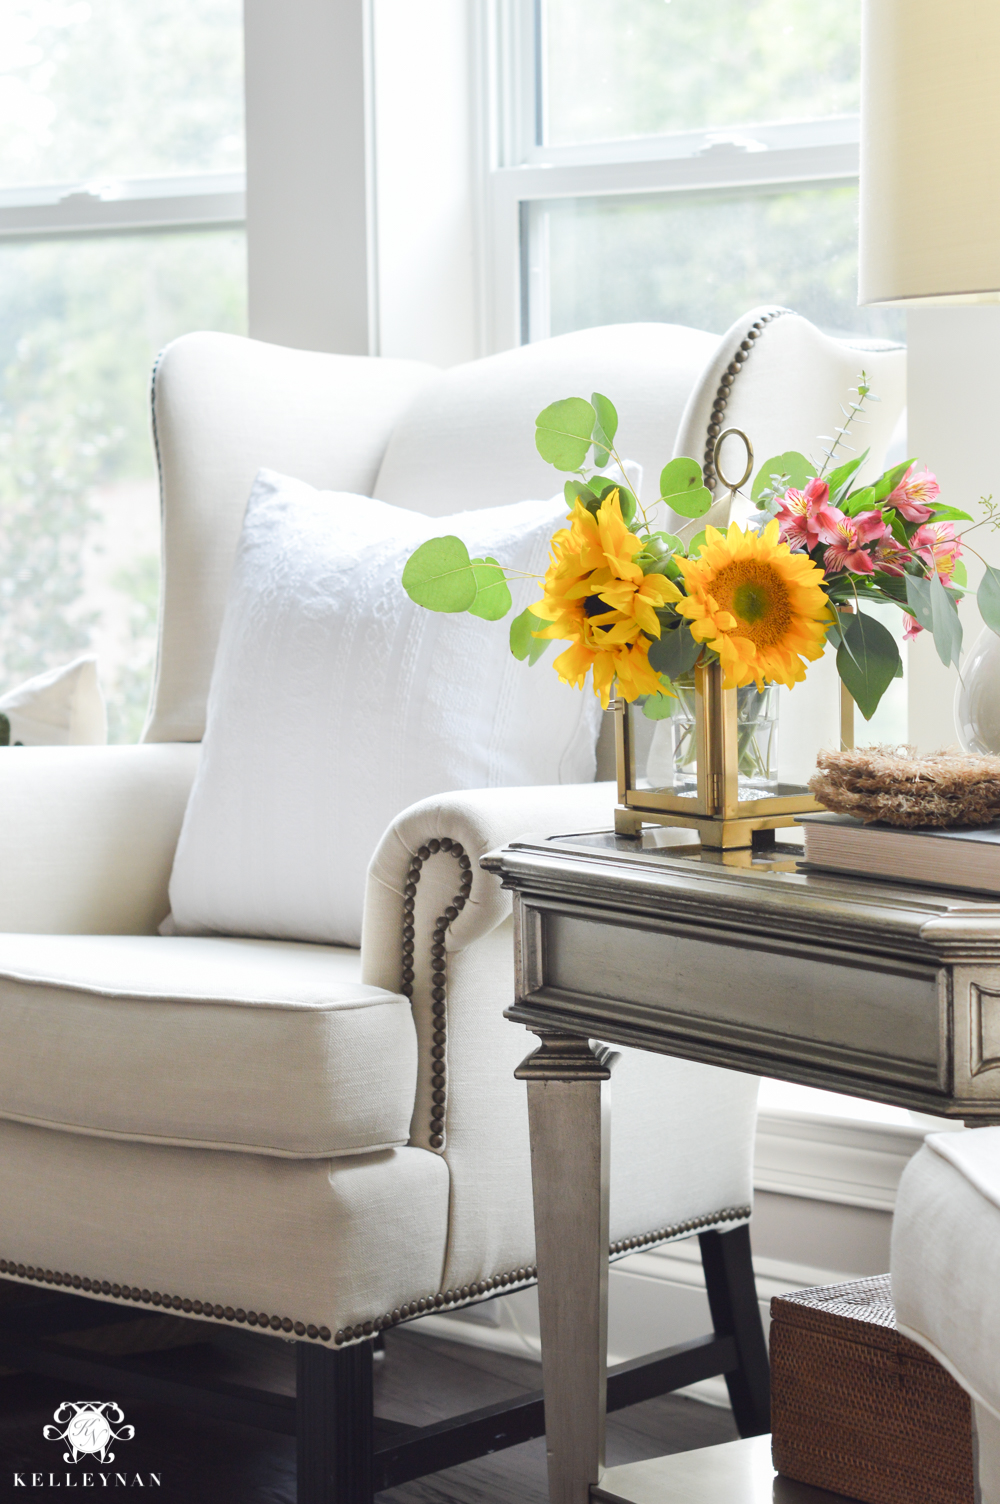 Floral Arrangement in Lantern- living room flowers in gold Pottery Barn lantern and wingback chair